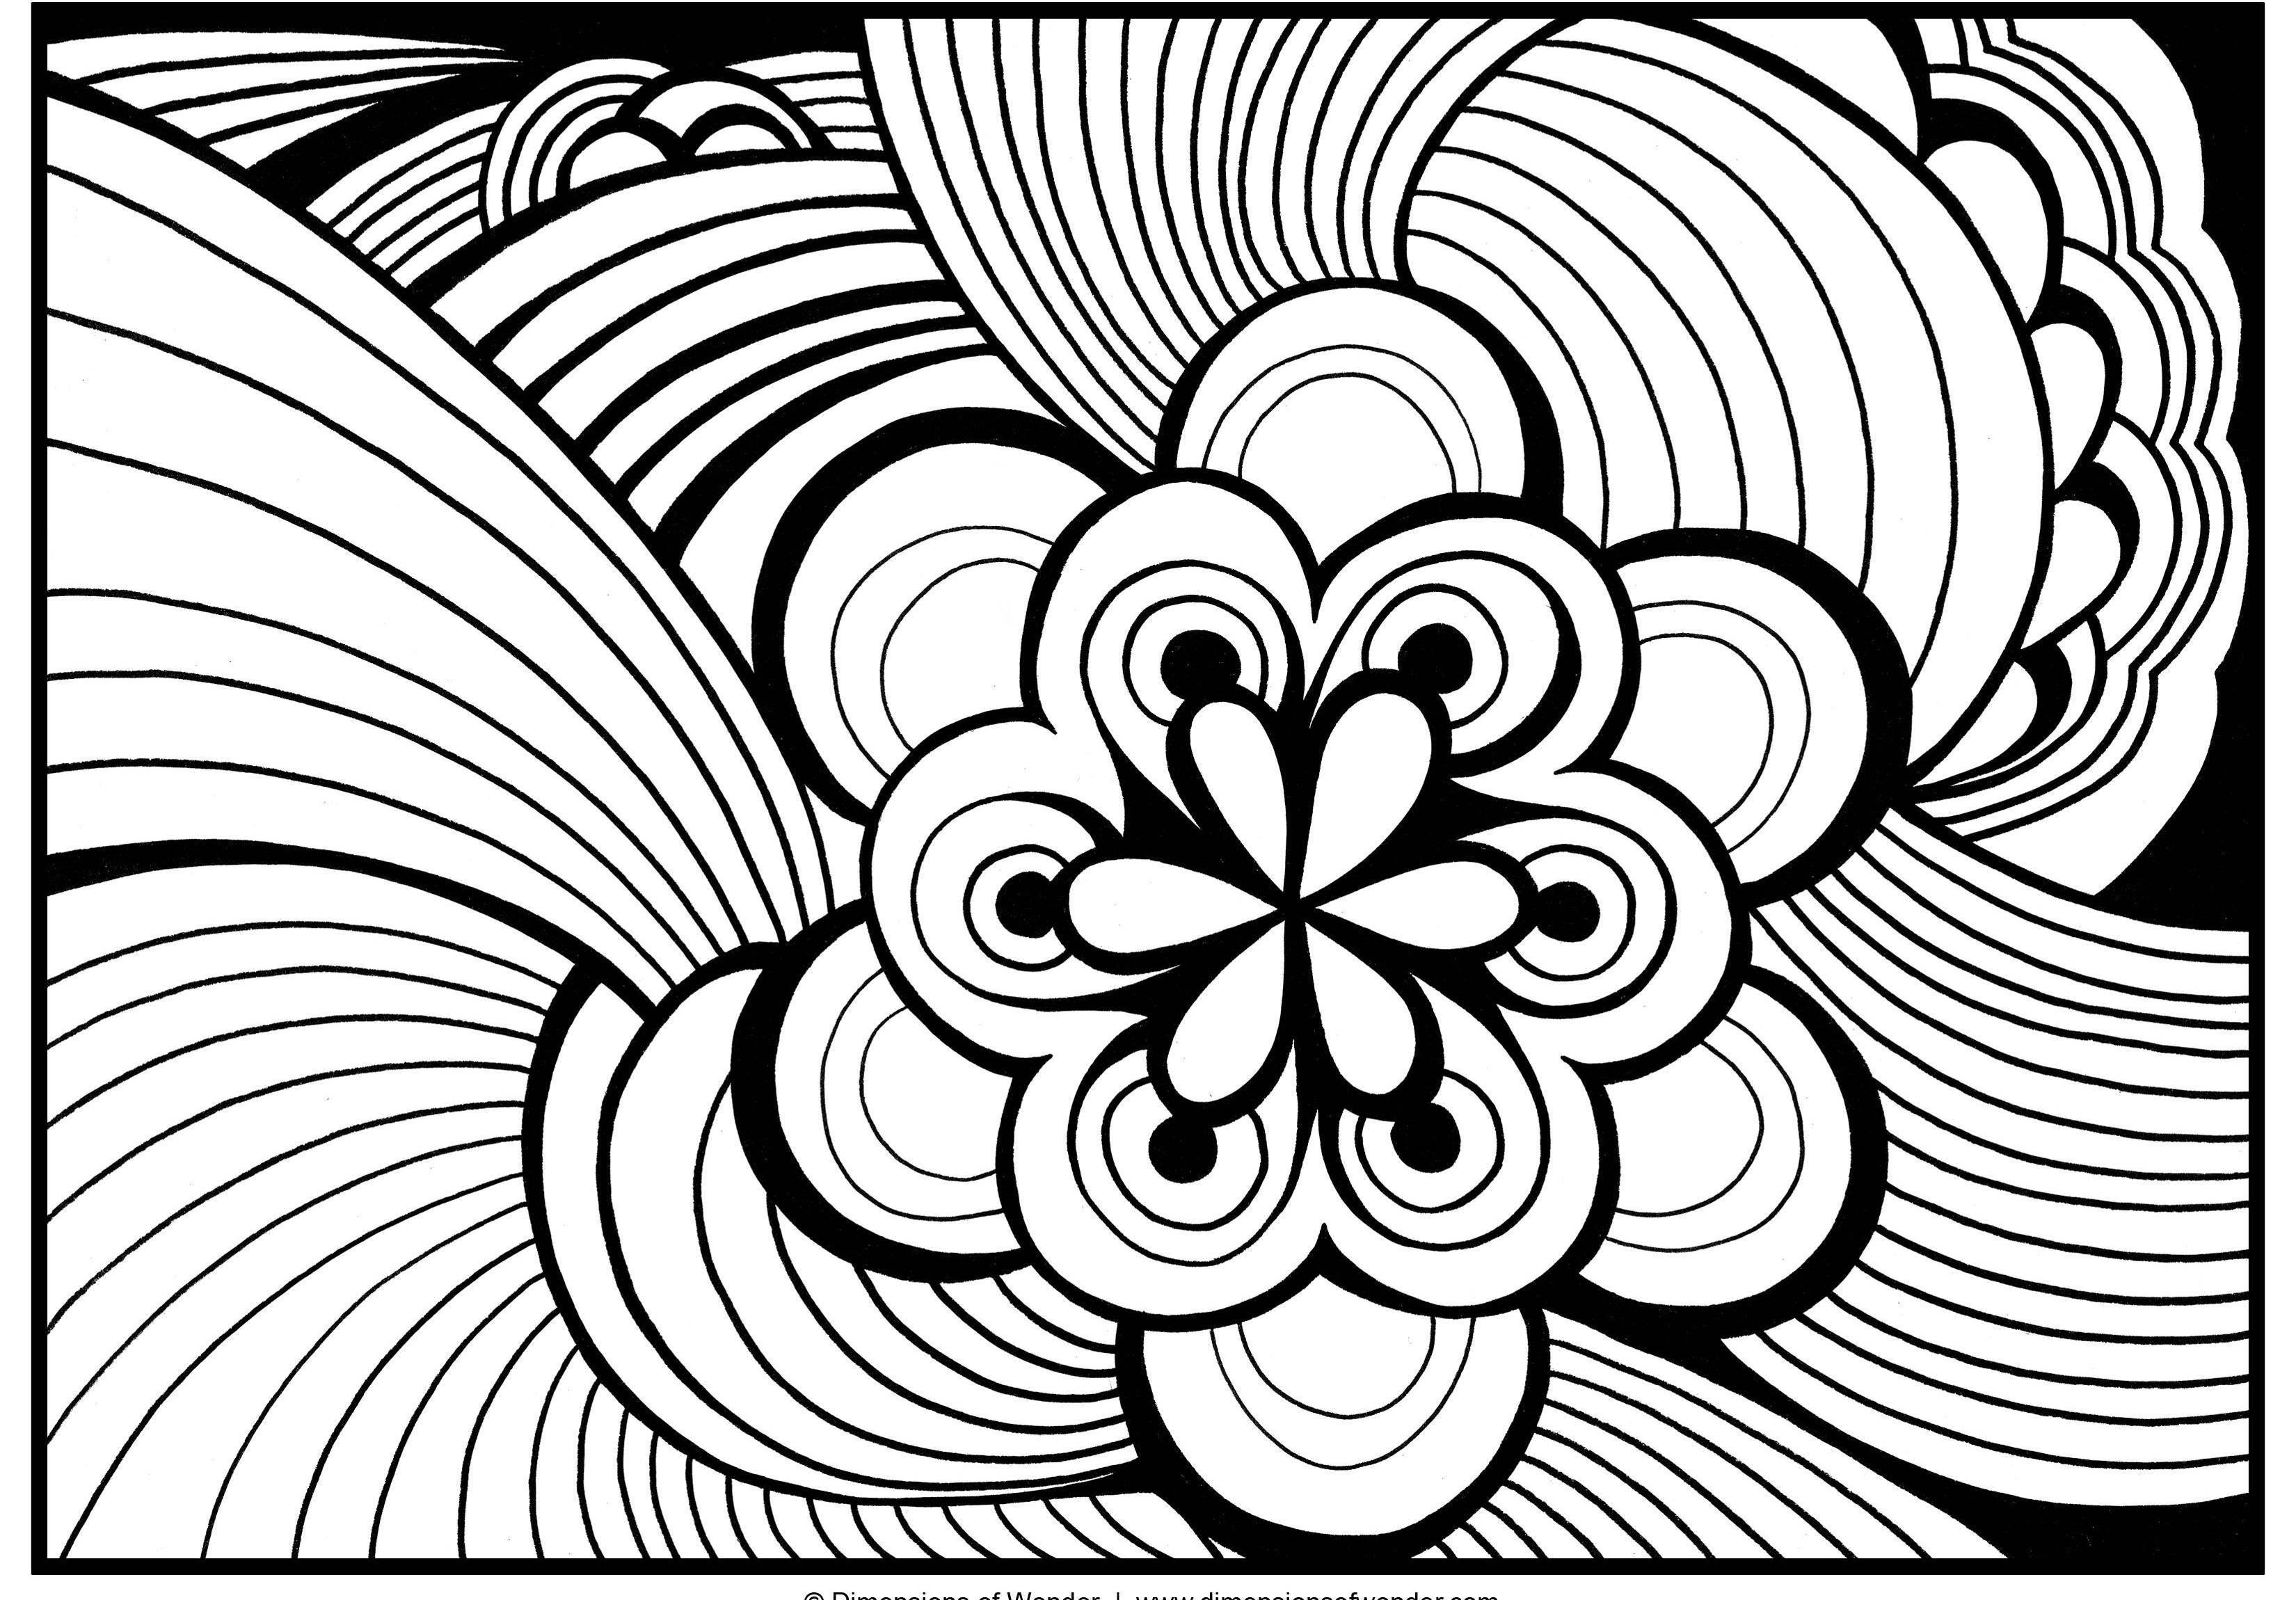 Abstract Flower Coloring Pages at GetDrawings.com | Free for ...